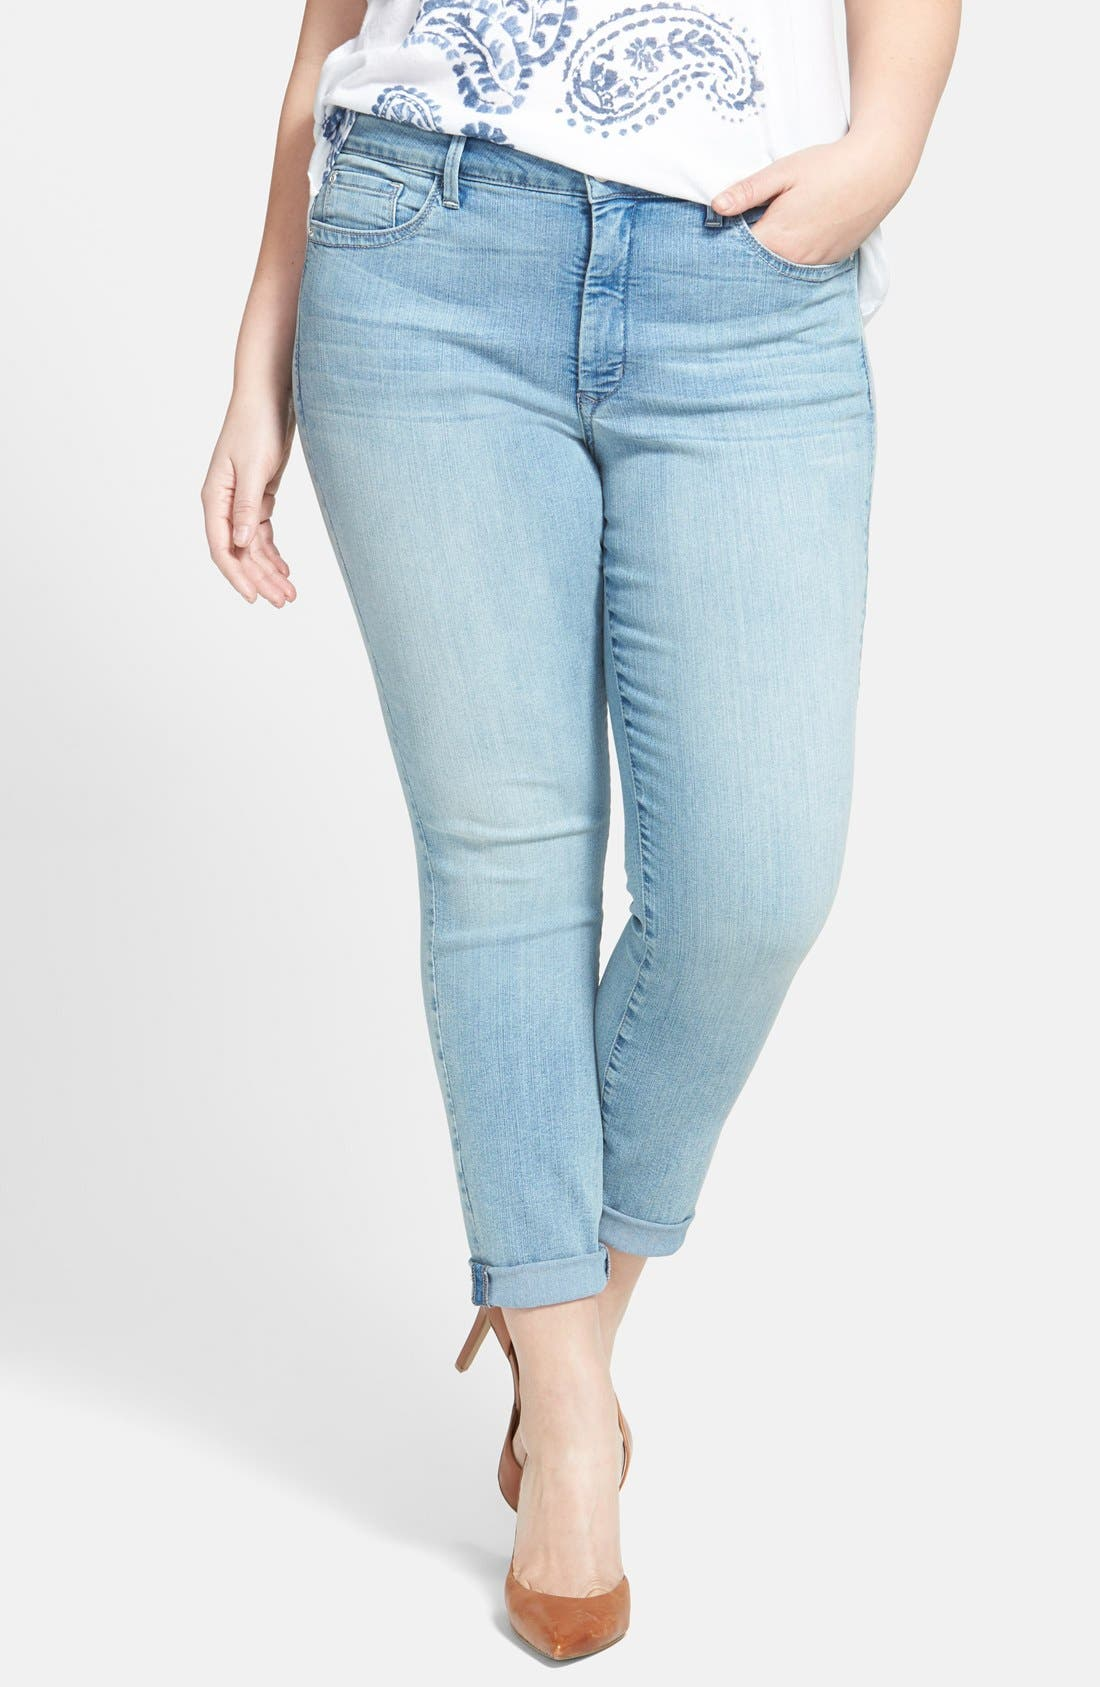 Alternate Image 1 Selected - NYDJ 'Annabelle' Stretch Boyfriend Jeans (Manhattan) (Plus Size)